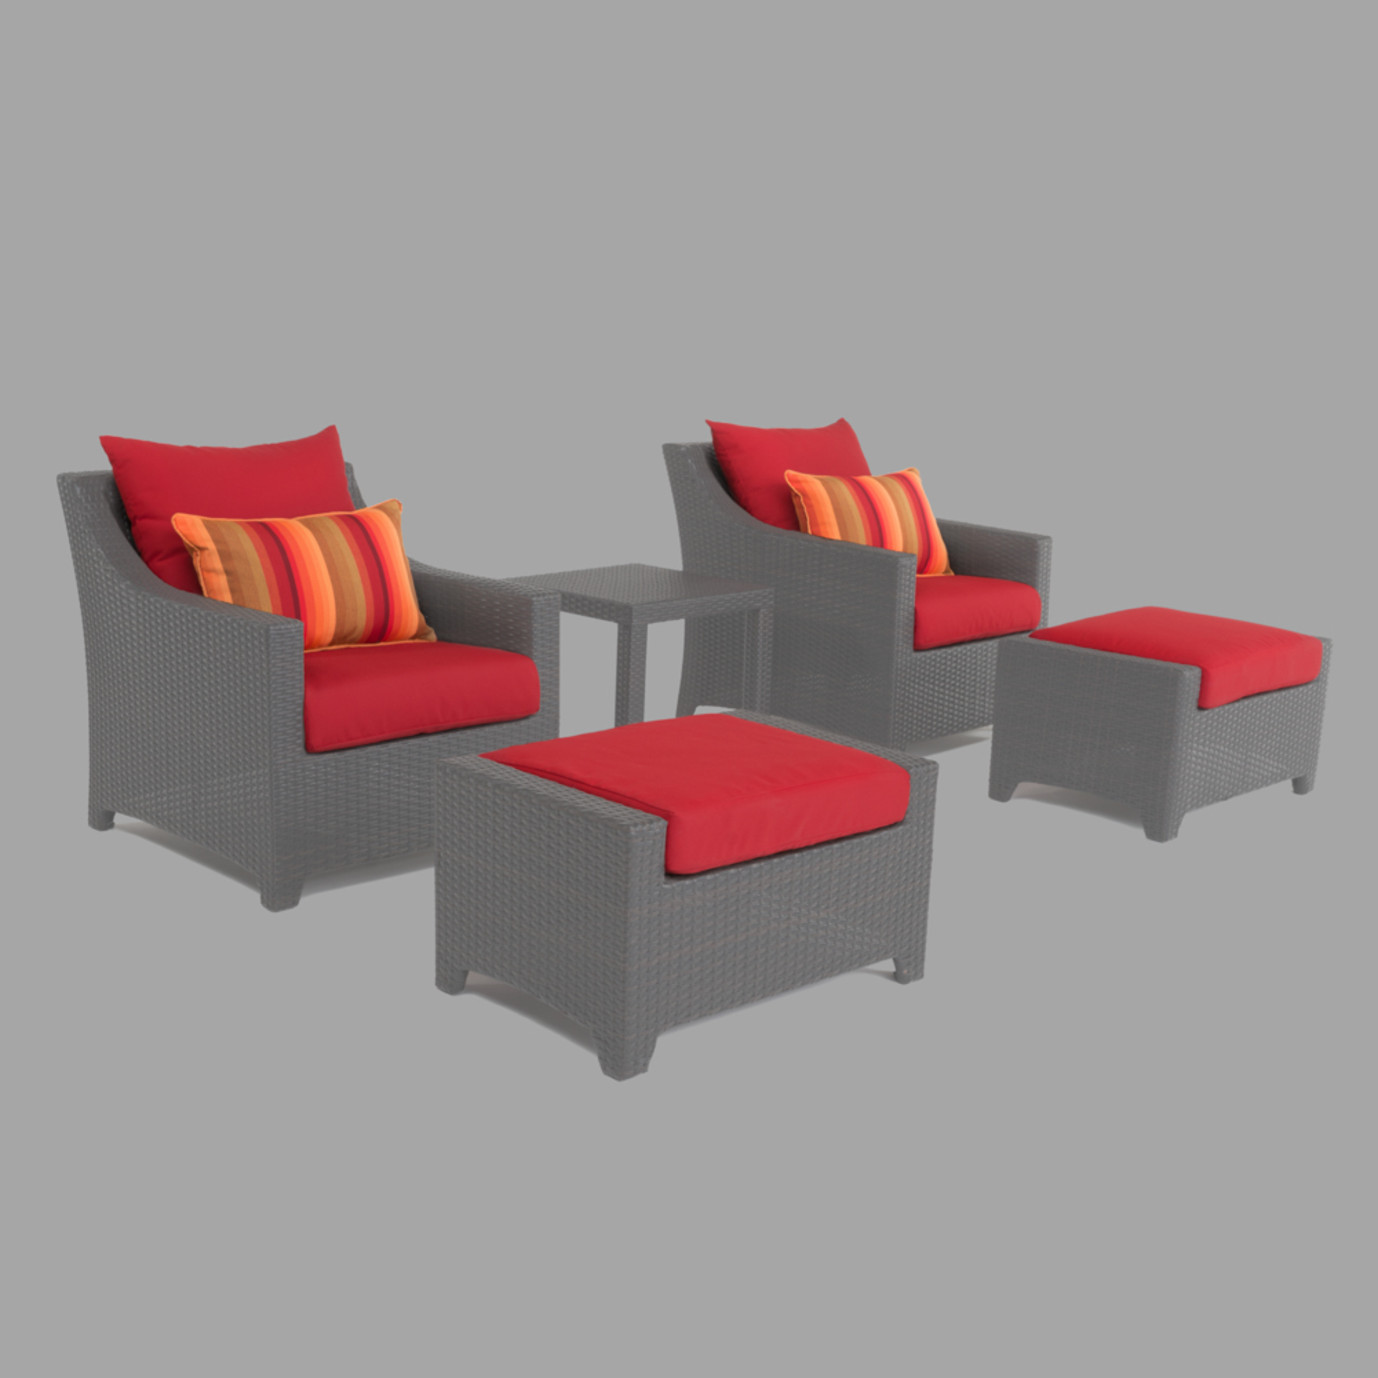 Modular Outdoor 5pc Club Cushion Cover Set - Sunset Red